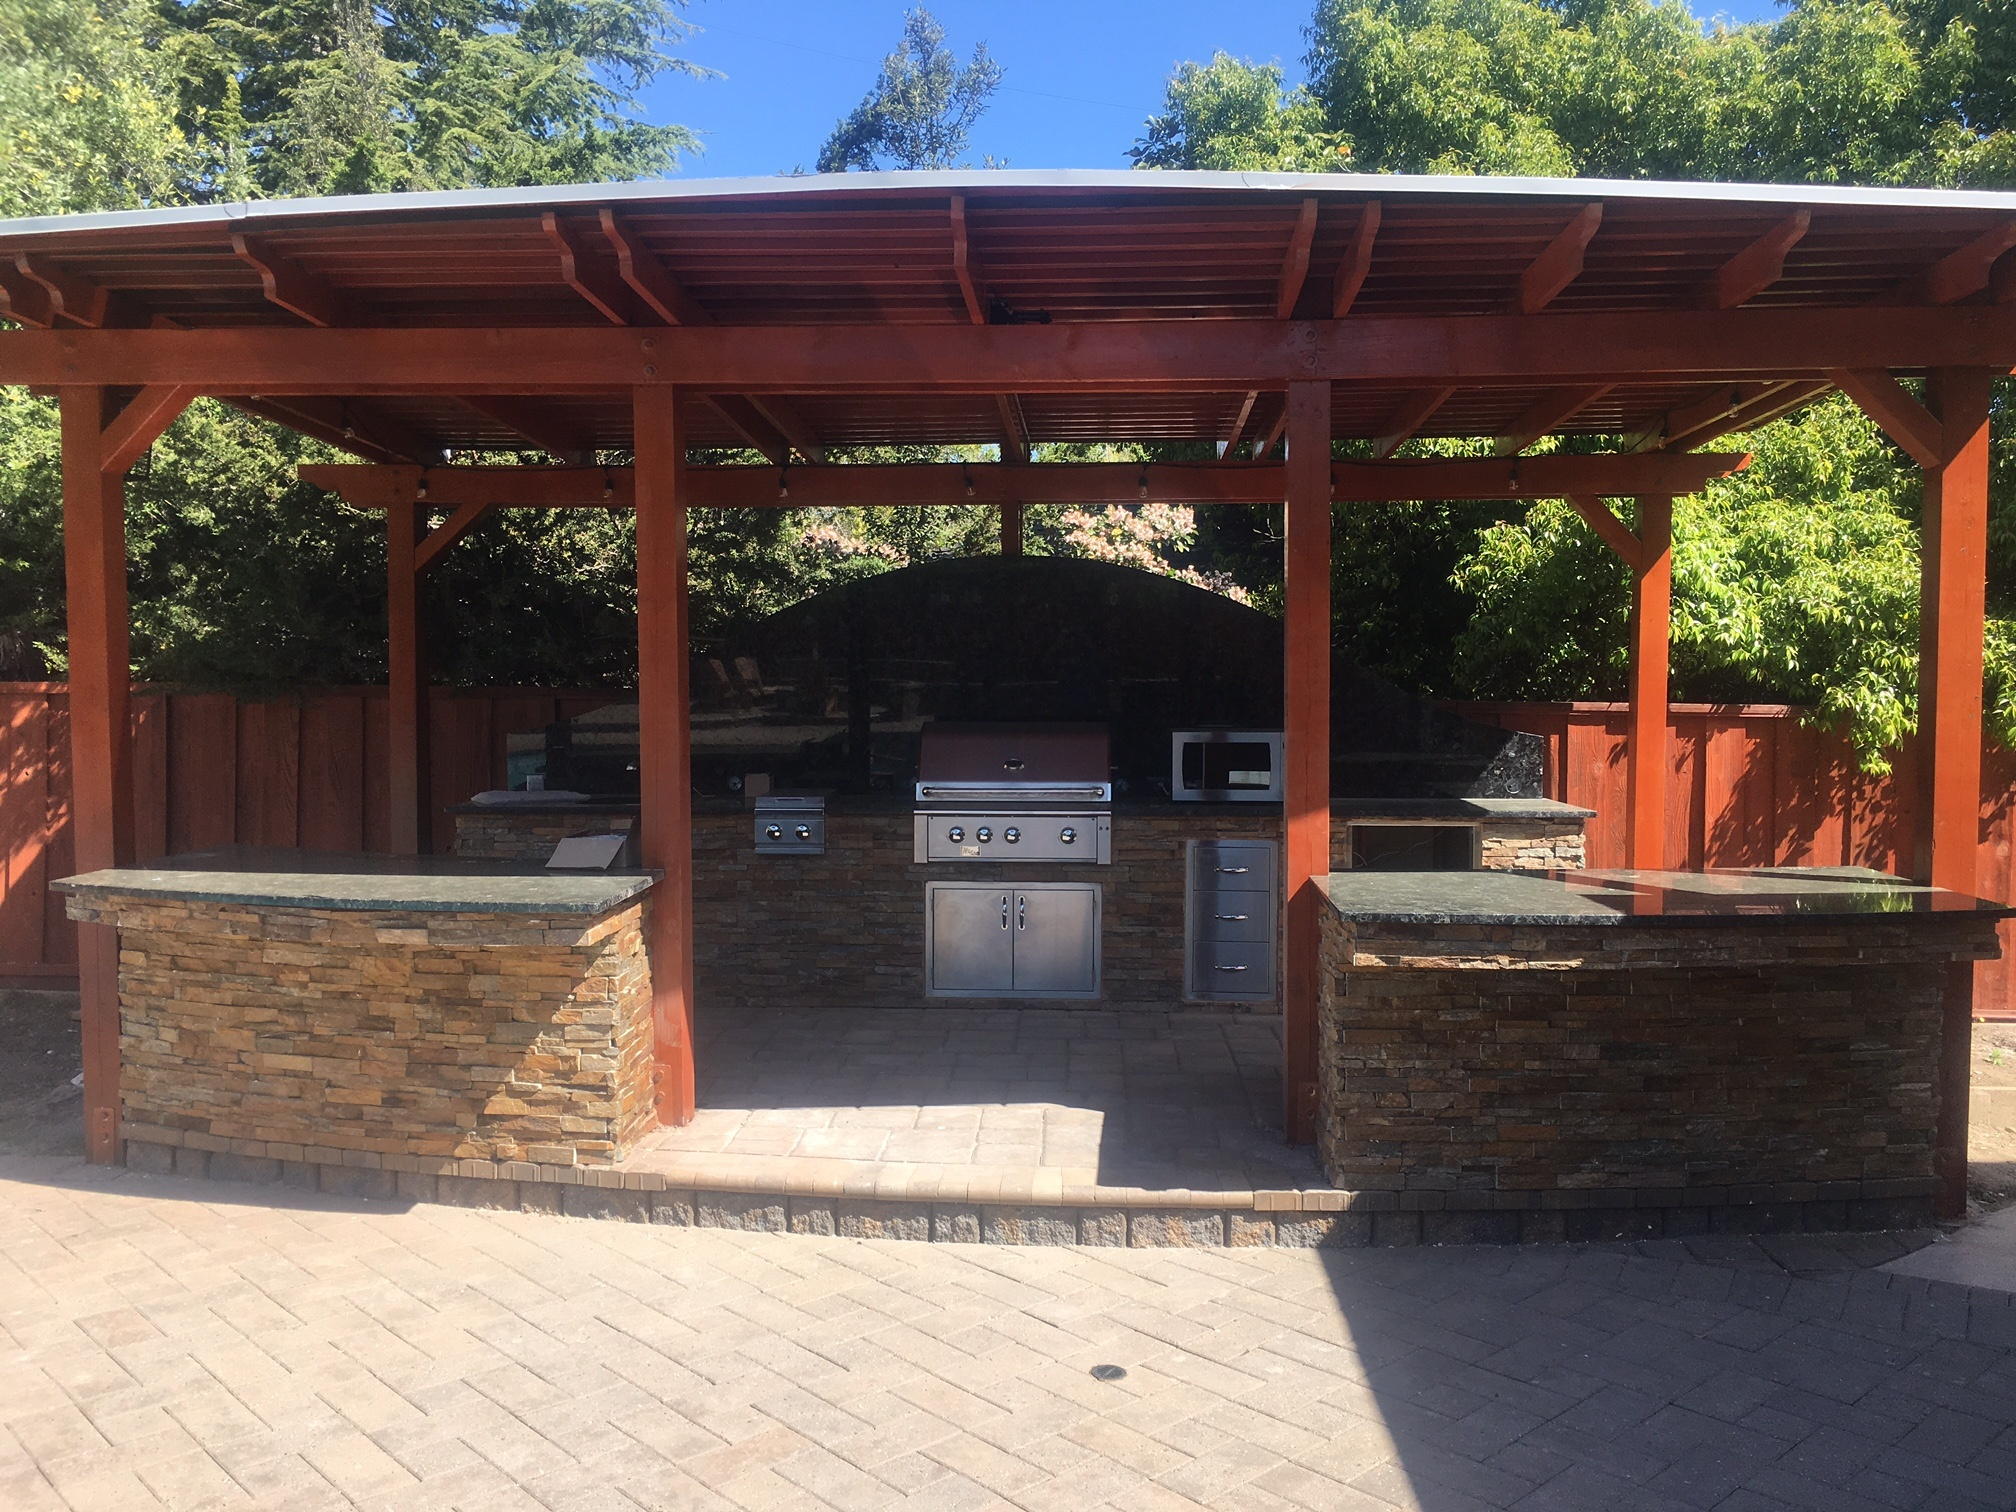 Backyard Pergola and Outdoor Kitchen - Saratoga, CA